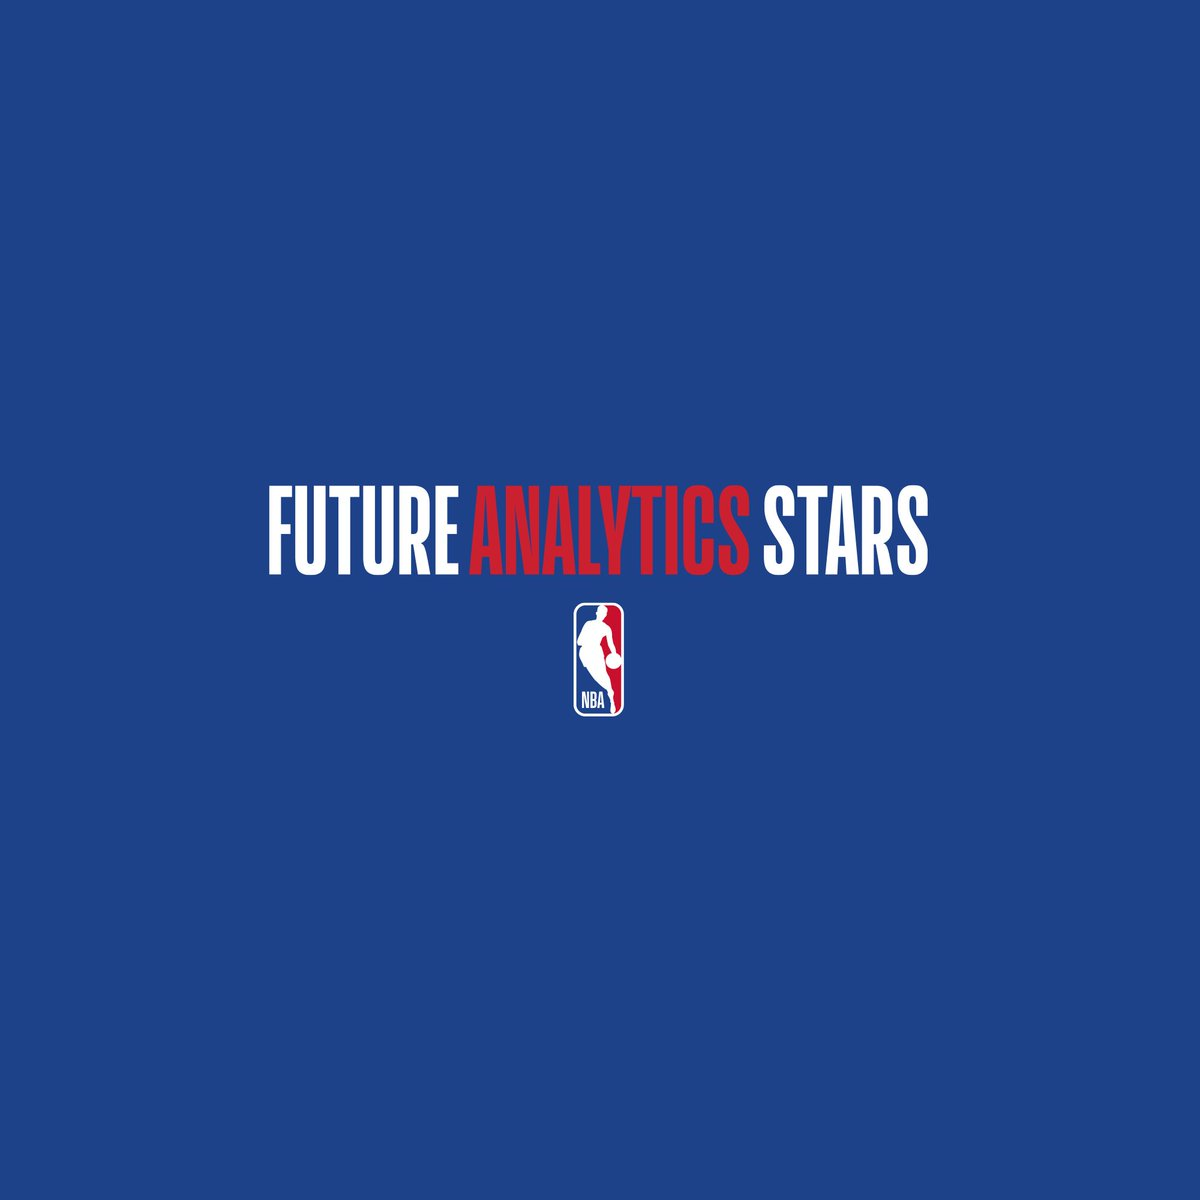 After a successful Future Sales Stars program with 74% of job seeking participants hired, the NBA launches the first ever, Future Analytics Stars program. Application period NOW OPEN! #NBACareers  https://t.co/LkEb0ps2kh https://t.co/eX3K4TWKNC